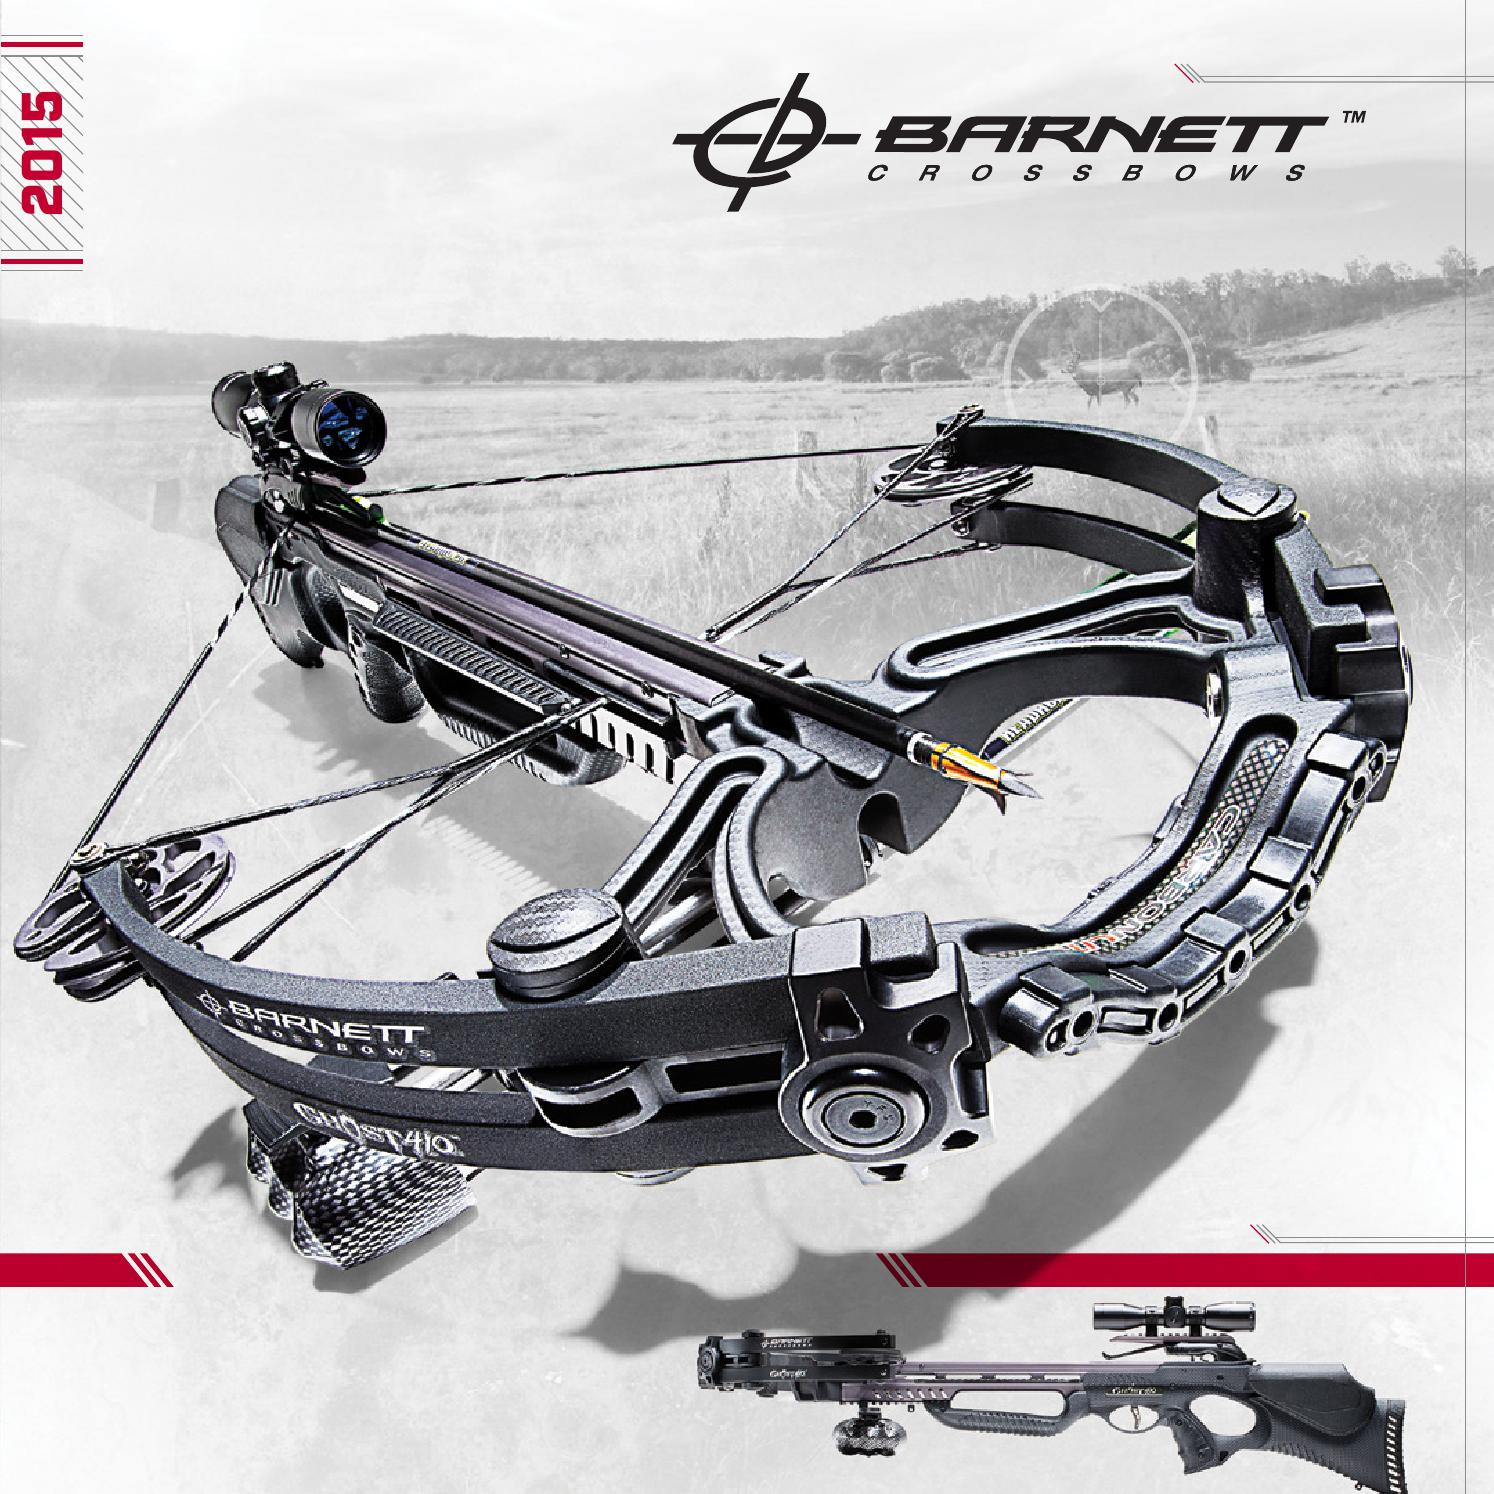 Barnett Crossbows - 2015 Product Guide by PlanoSynergy - issuu